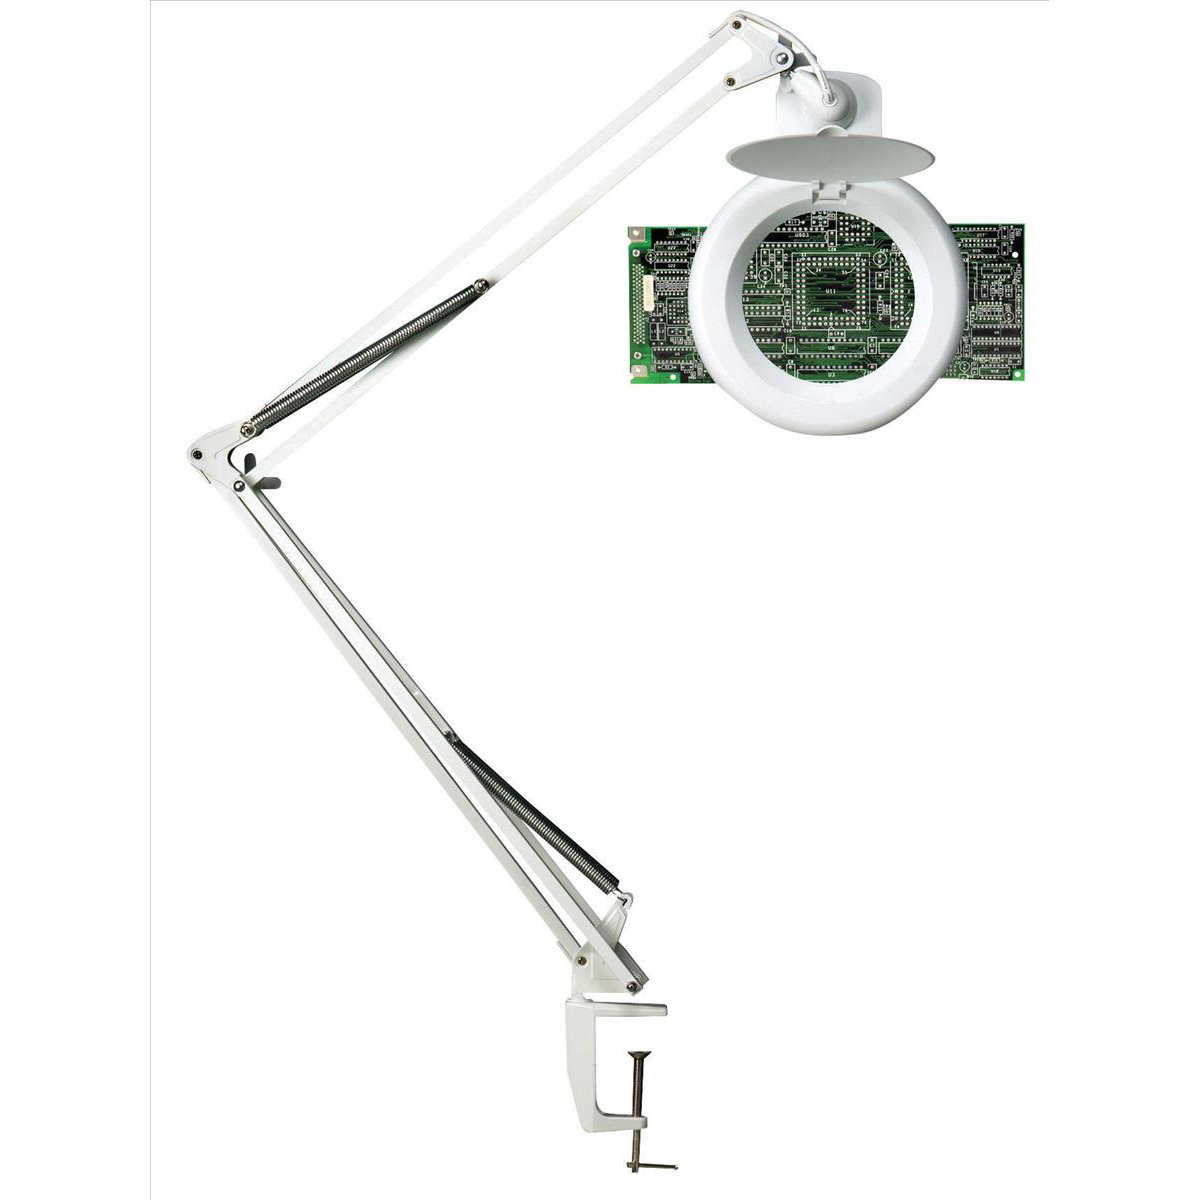 Unilux Magnifier Lamp 3 Diopters 22W Maximum Height of 1000mm Base Size 105mm White Ref 100340268